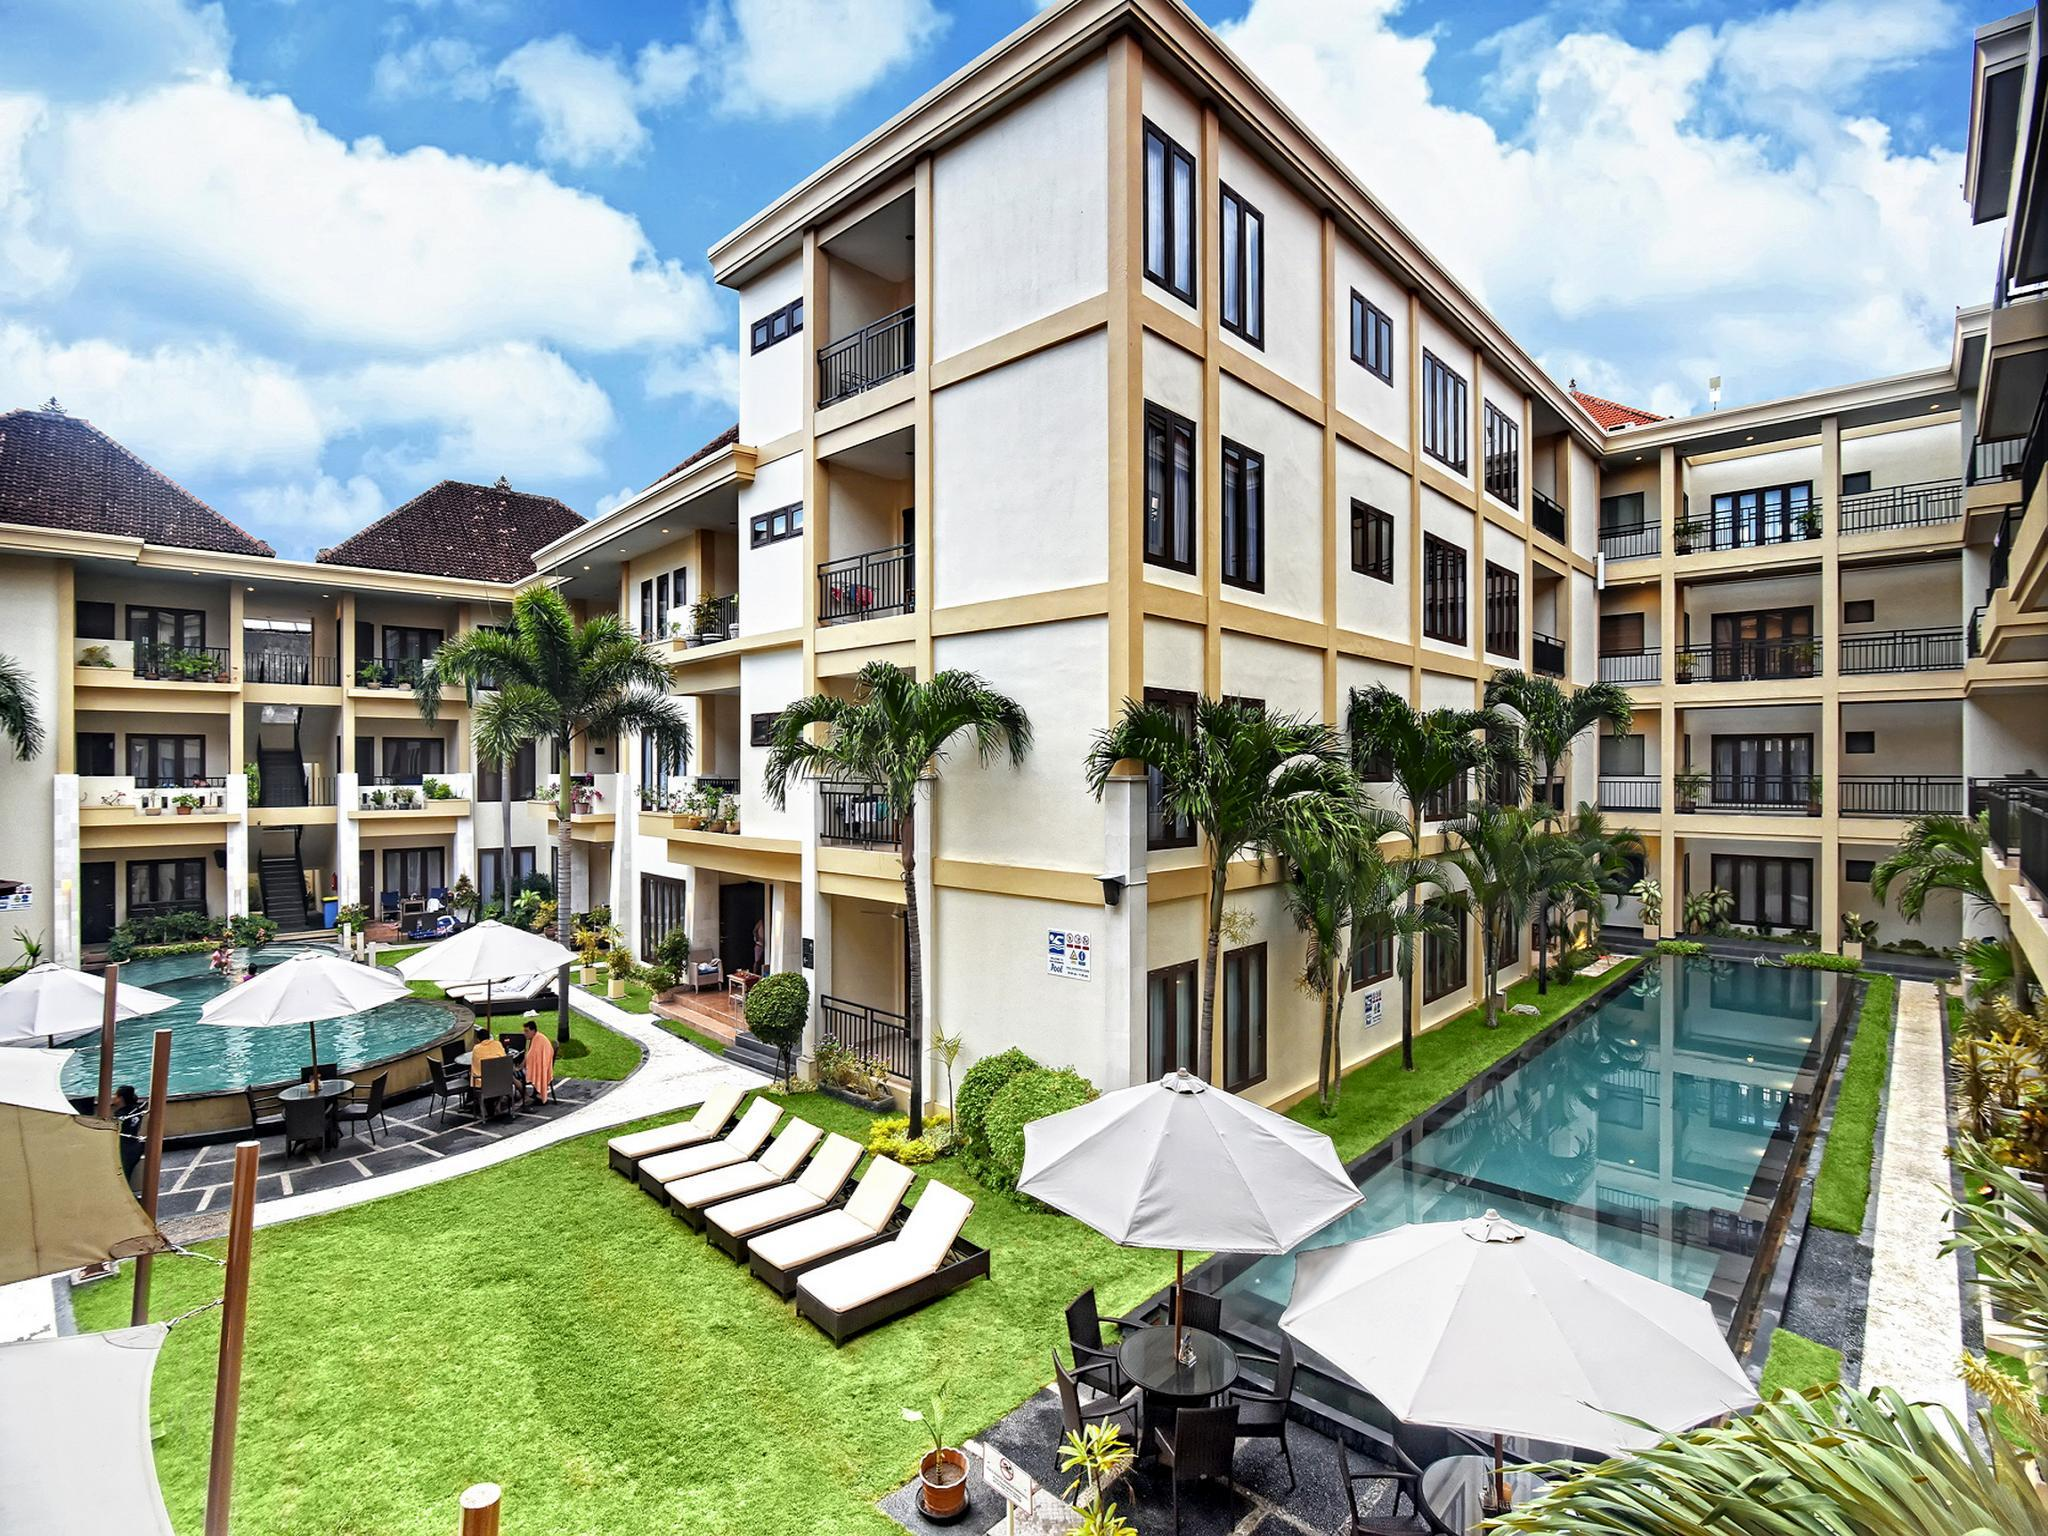 More About Kuta Townhouse Apartments